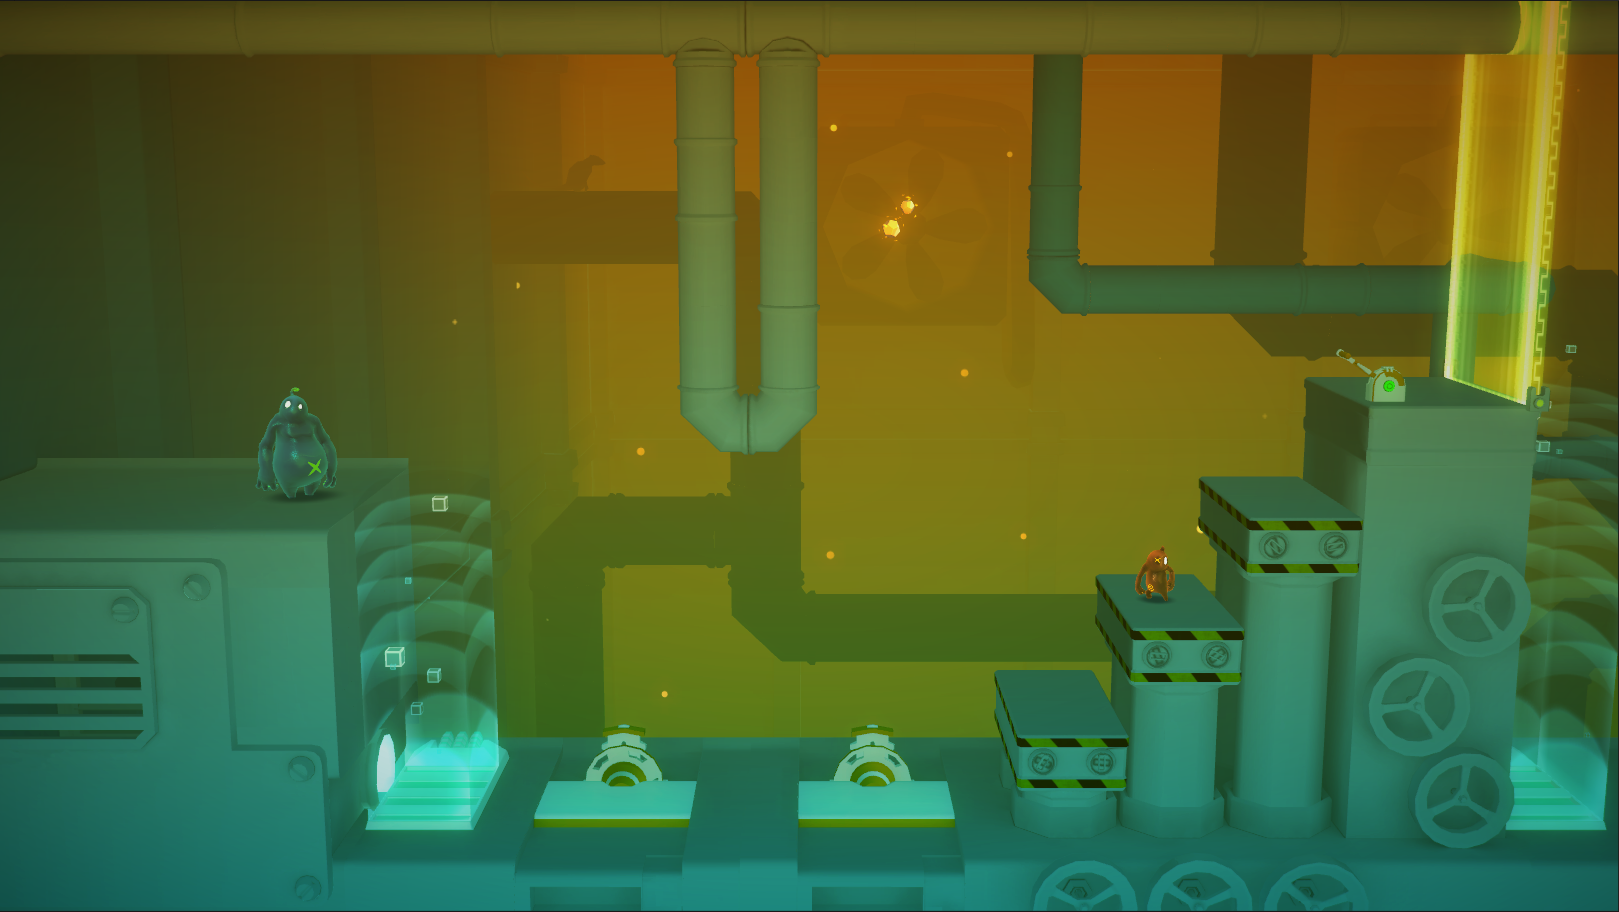 Training level with a different color shading